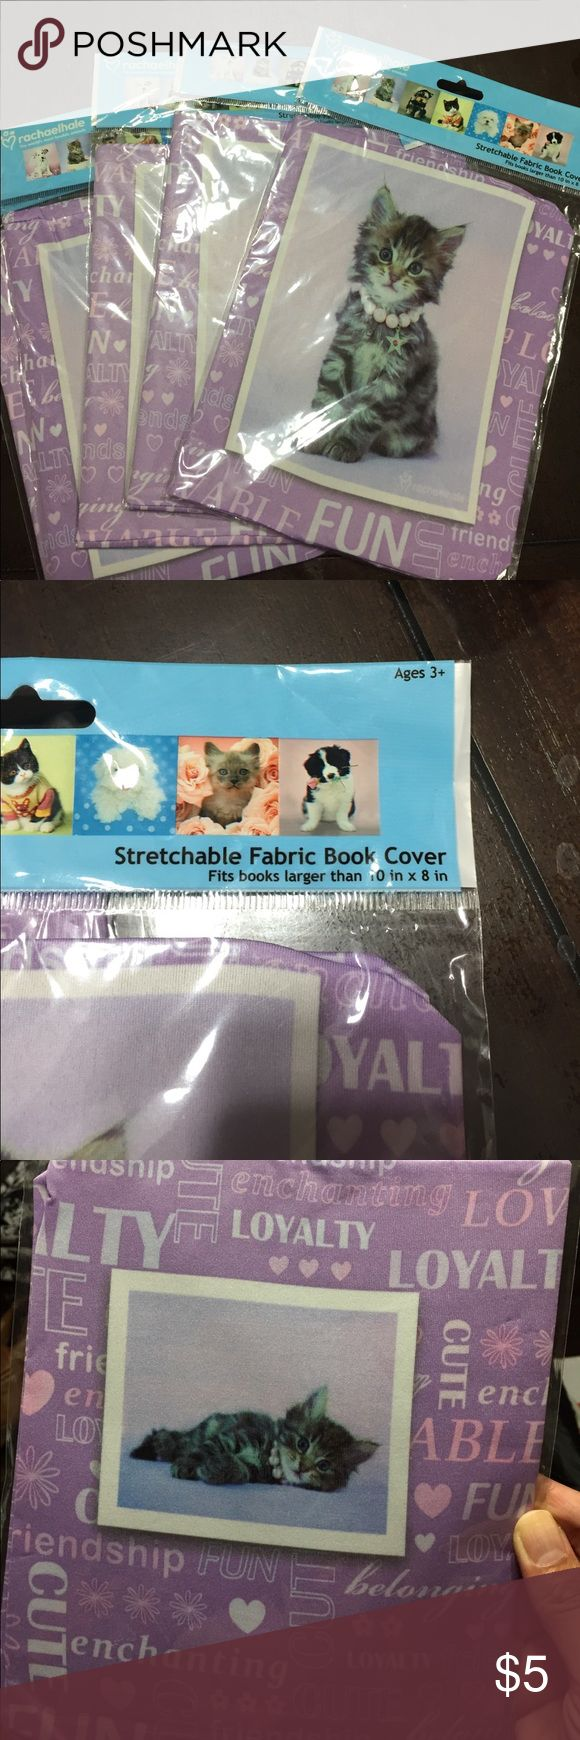 """Set of 5 stretchable fabric book covers Cute kitten book covers fits books larger than 10""""x8"""" books.  Great for the little ones so they don't mess up the books or for college books to protect them so it can be resold Other"""